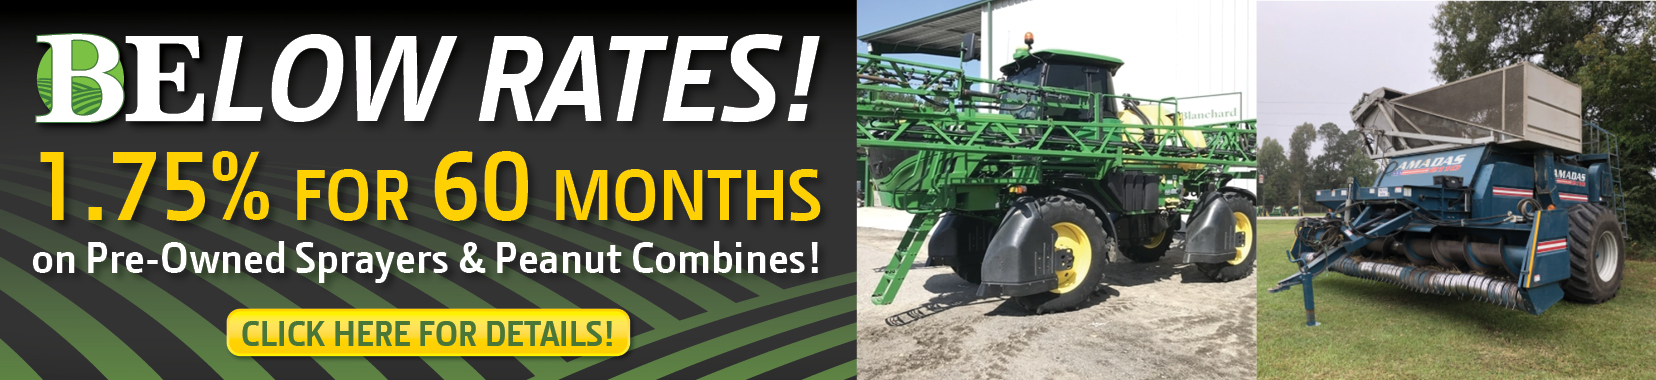 BElow Rates! 0.75% for 60 Months on Pre-Owned Sprayers & Peanut Combines at Blanchard Equipment.